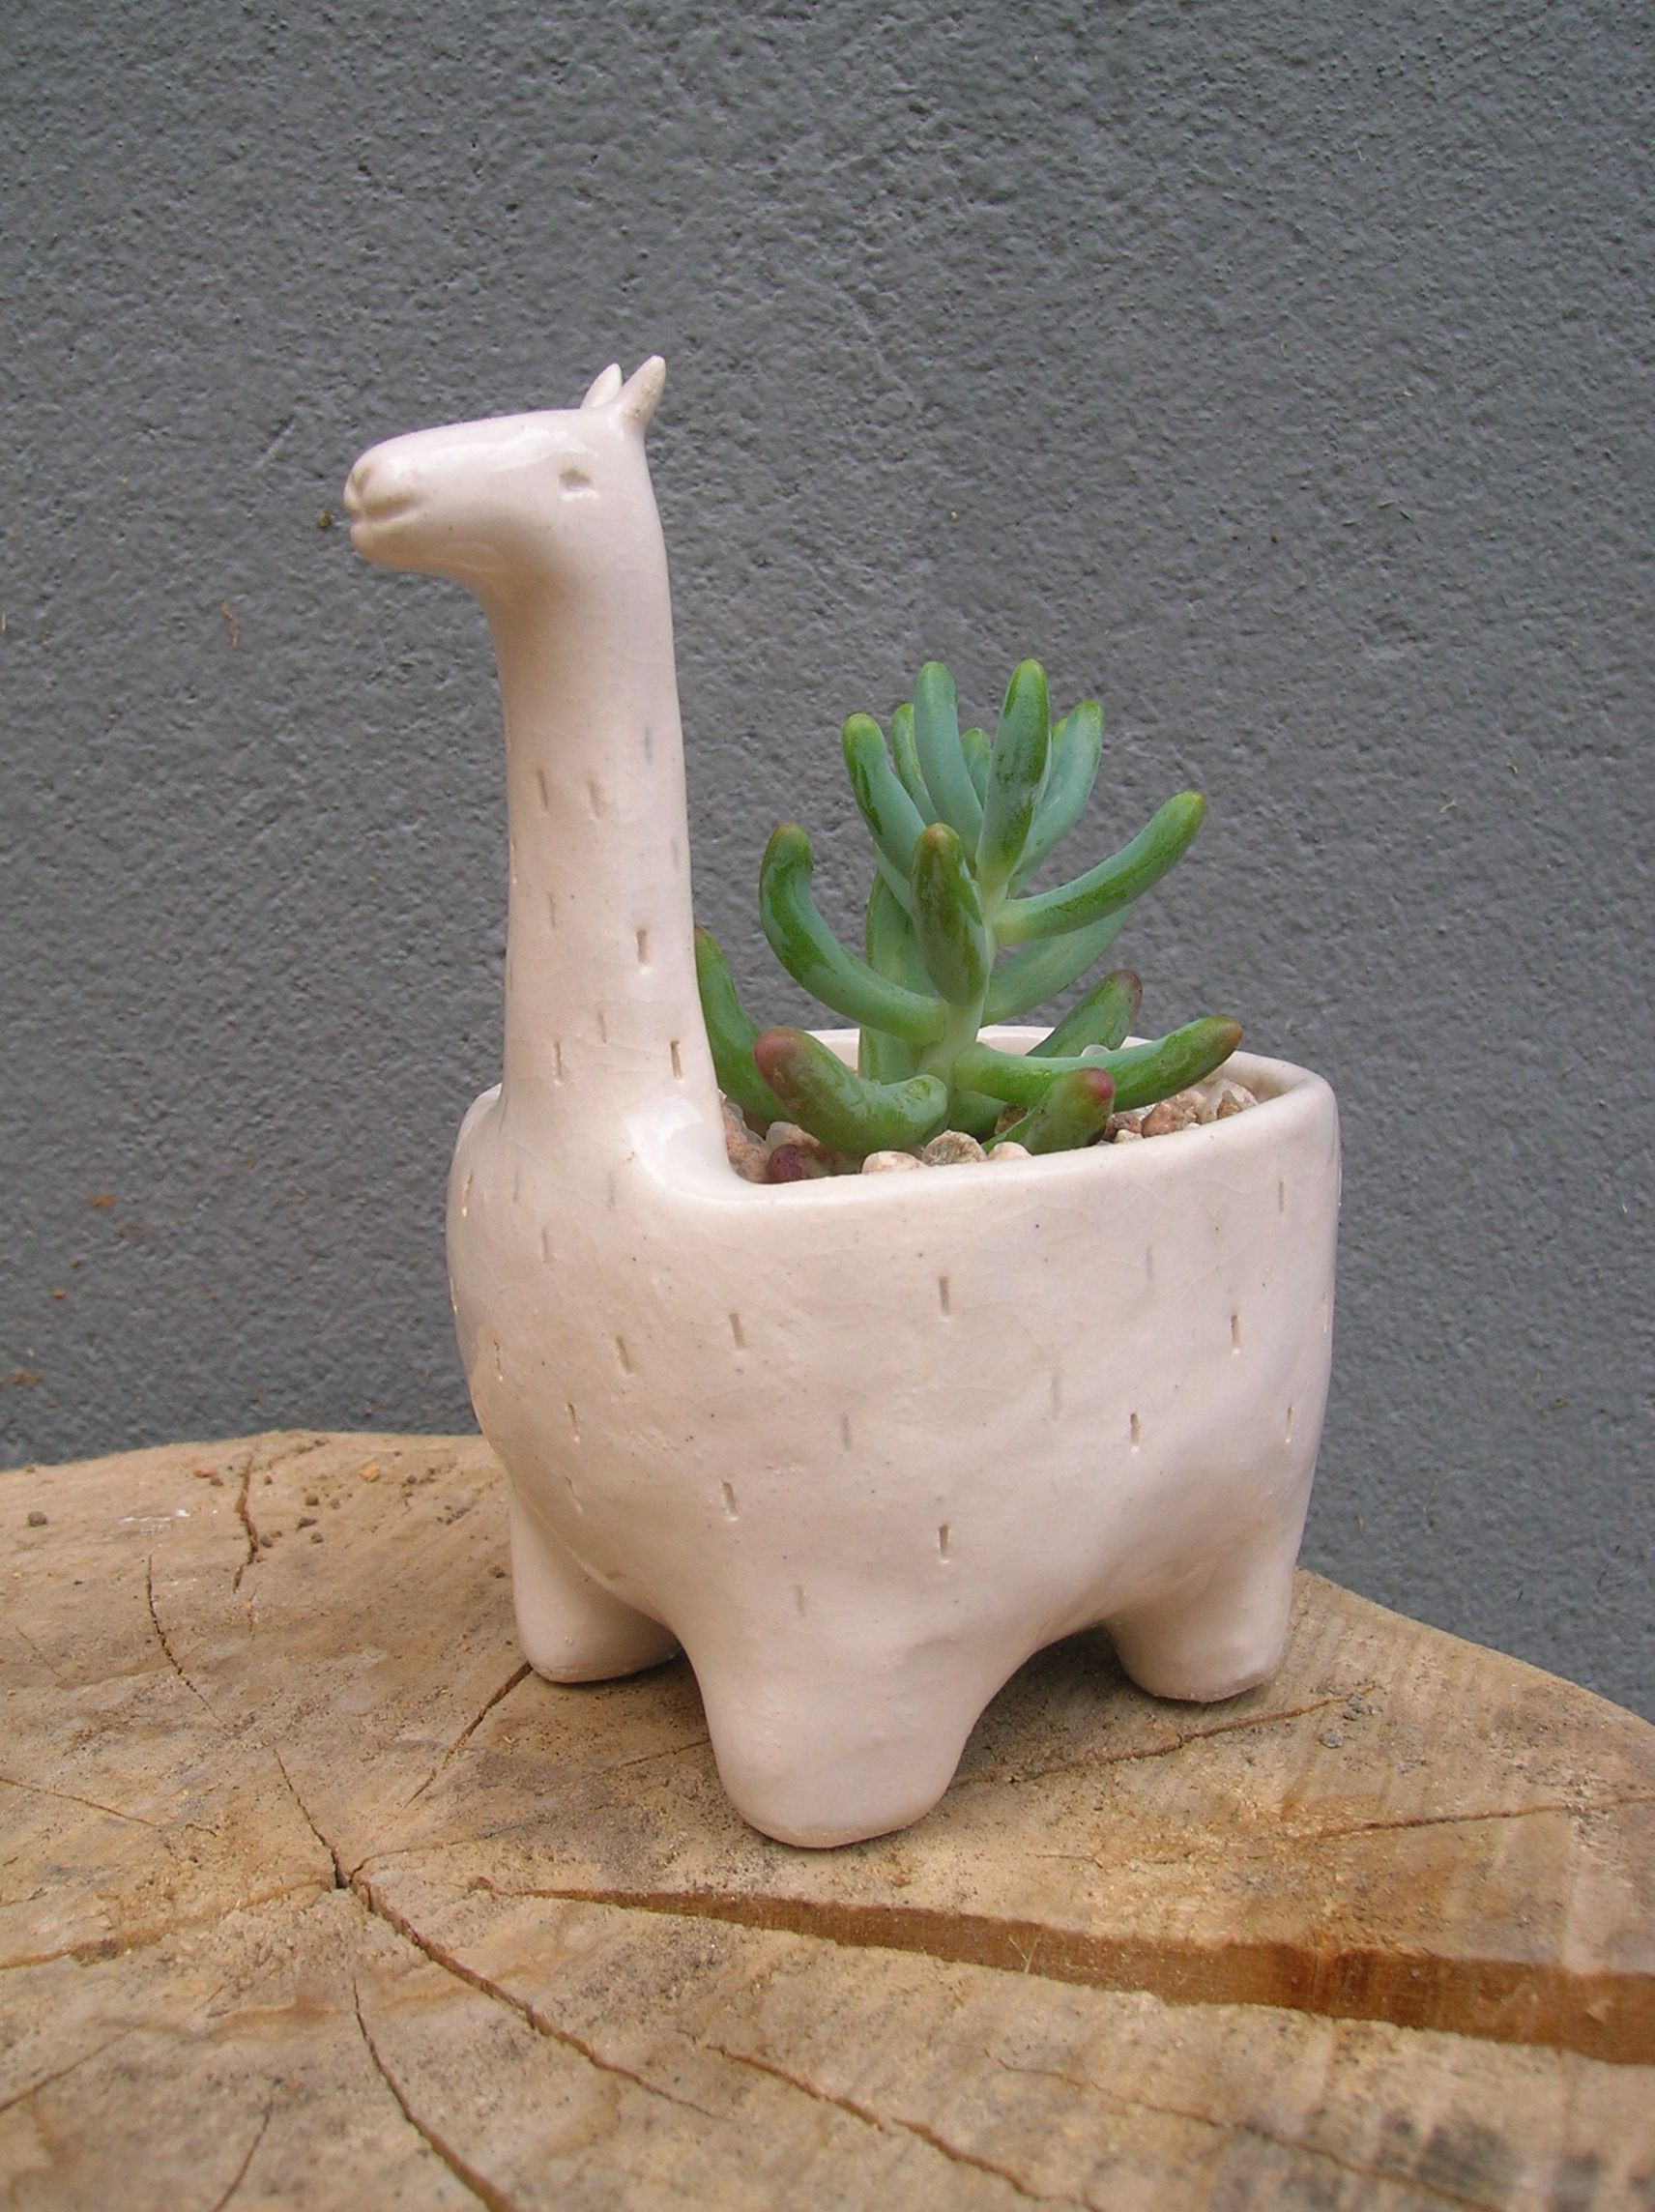 Ceramic Pottery For Plants Maceta De Cerámica Llama Verde Cactus Https Facebook